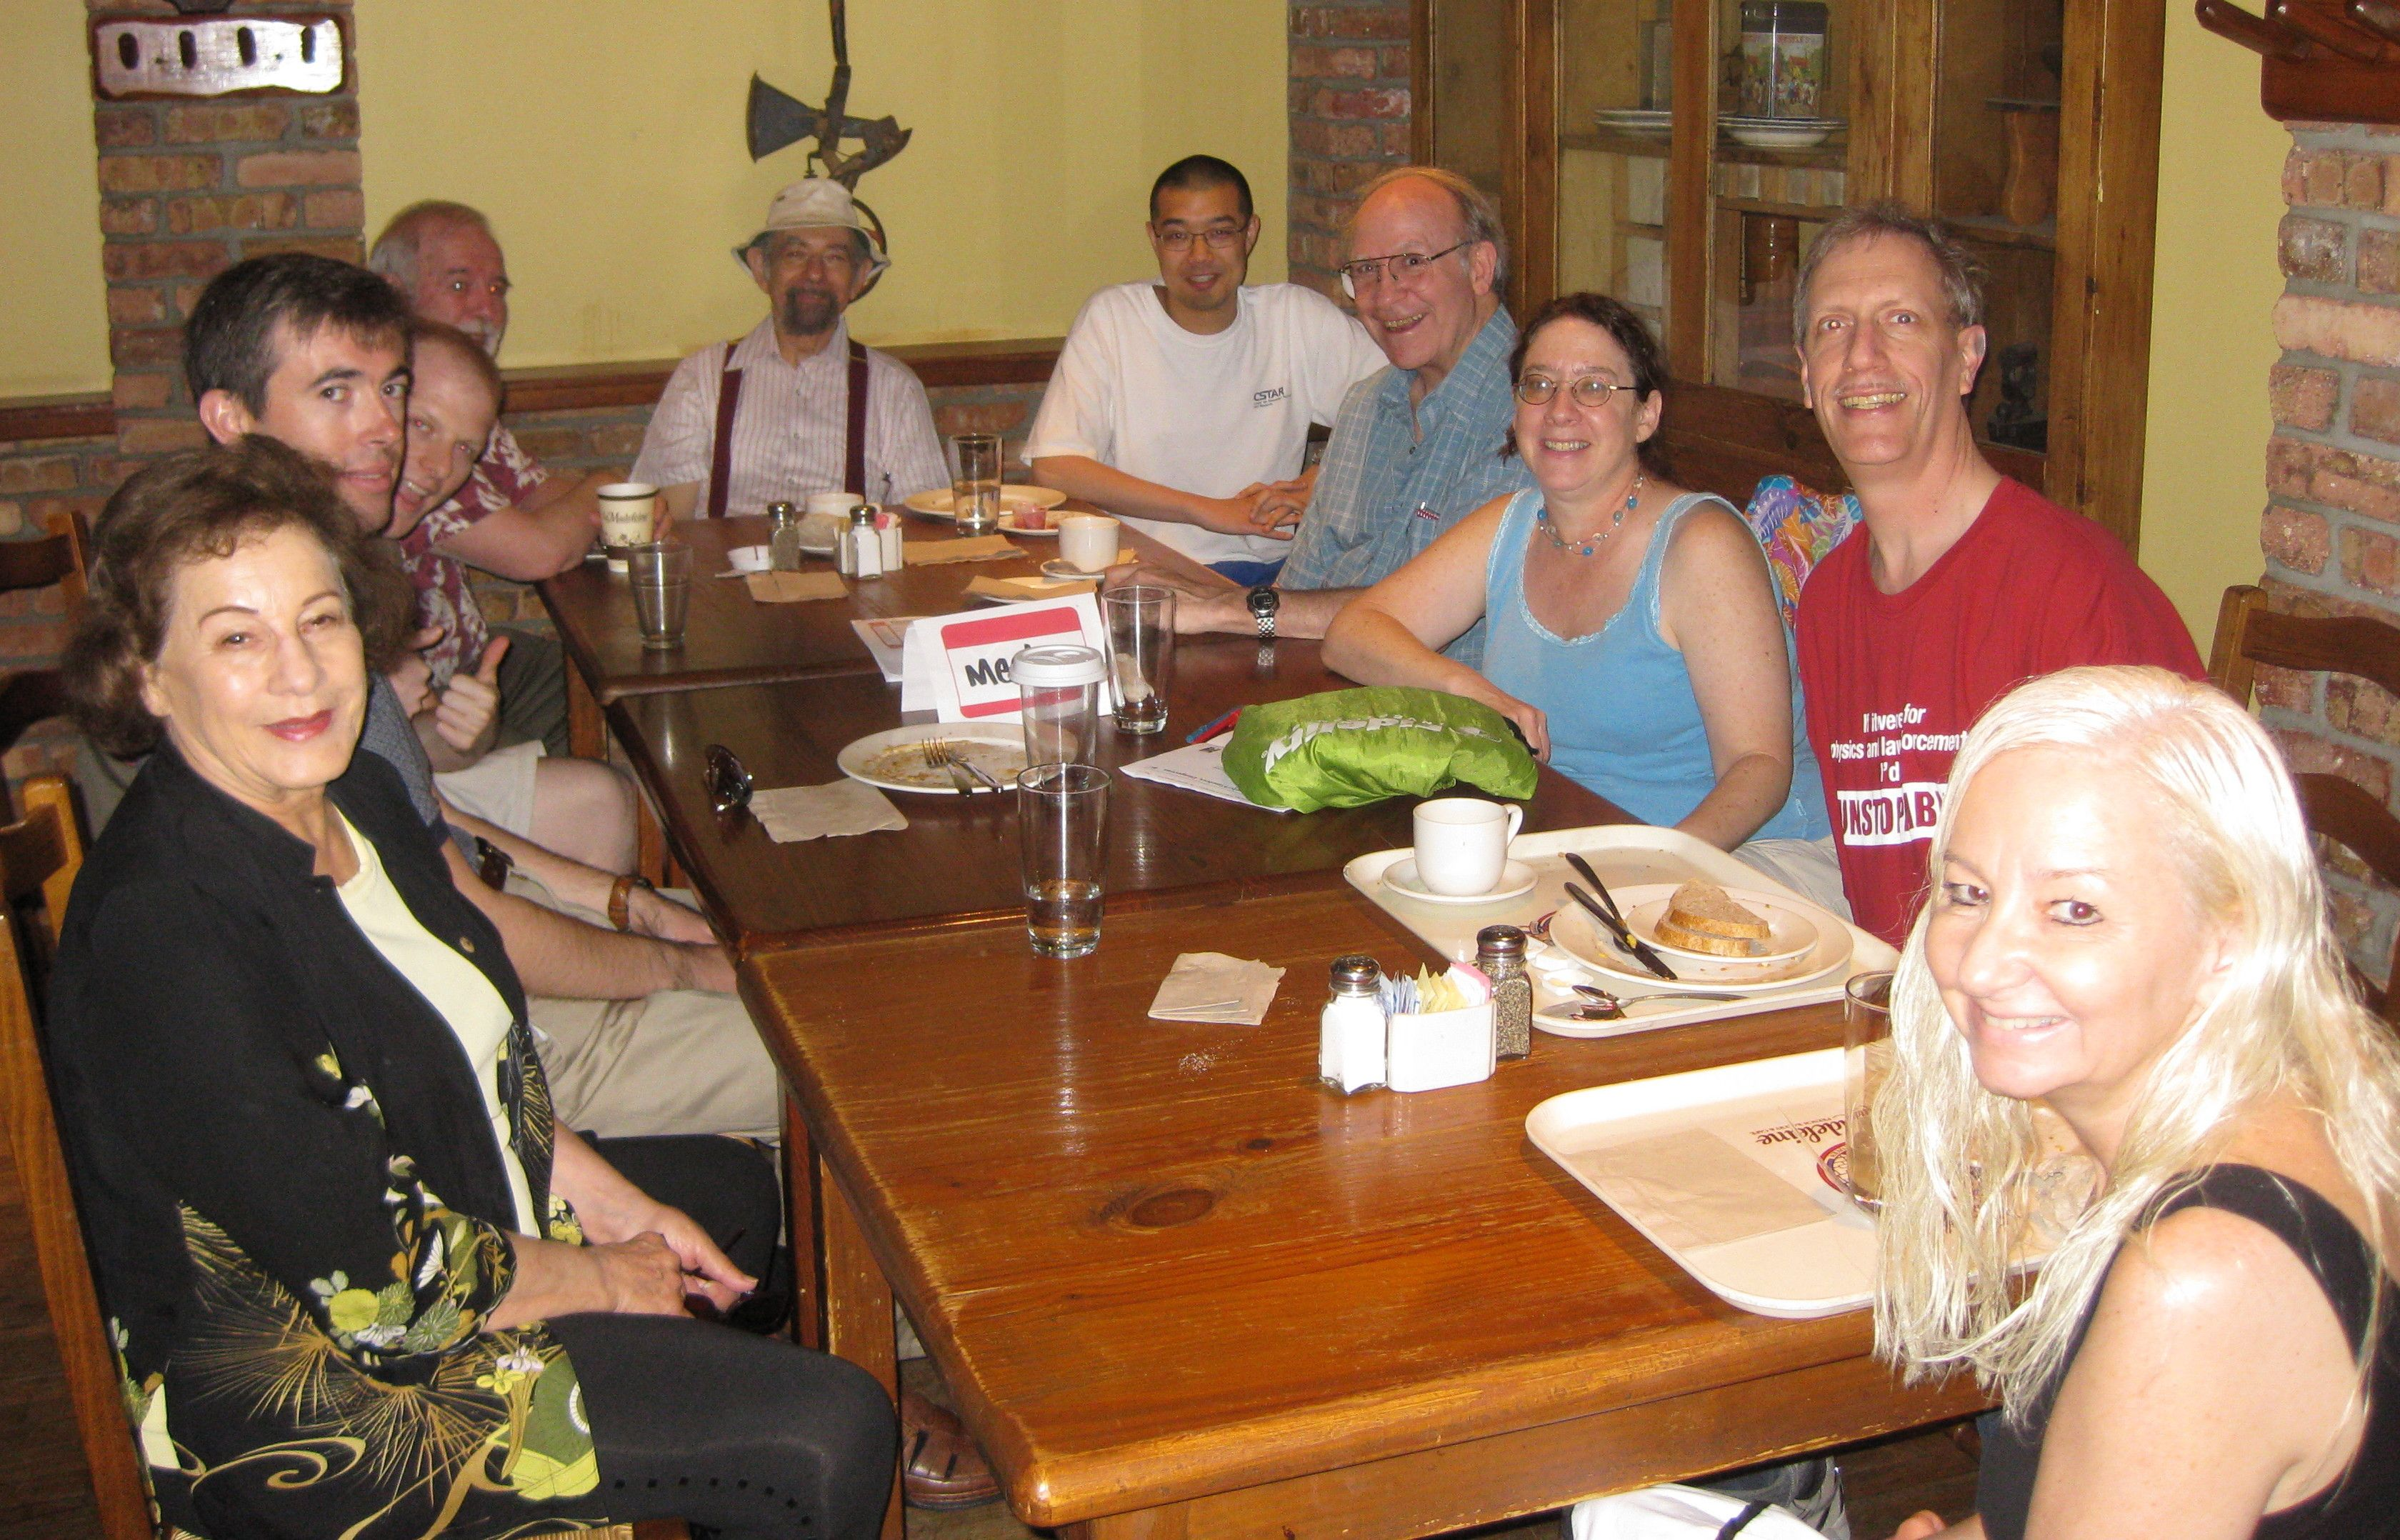 The Maryland Socrates Cafe Meetup Group